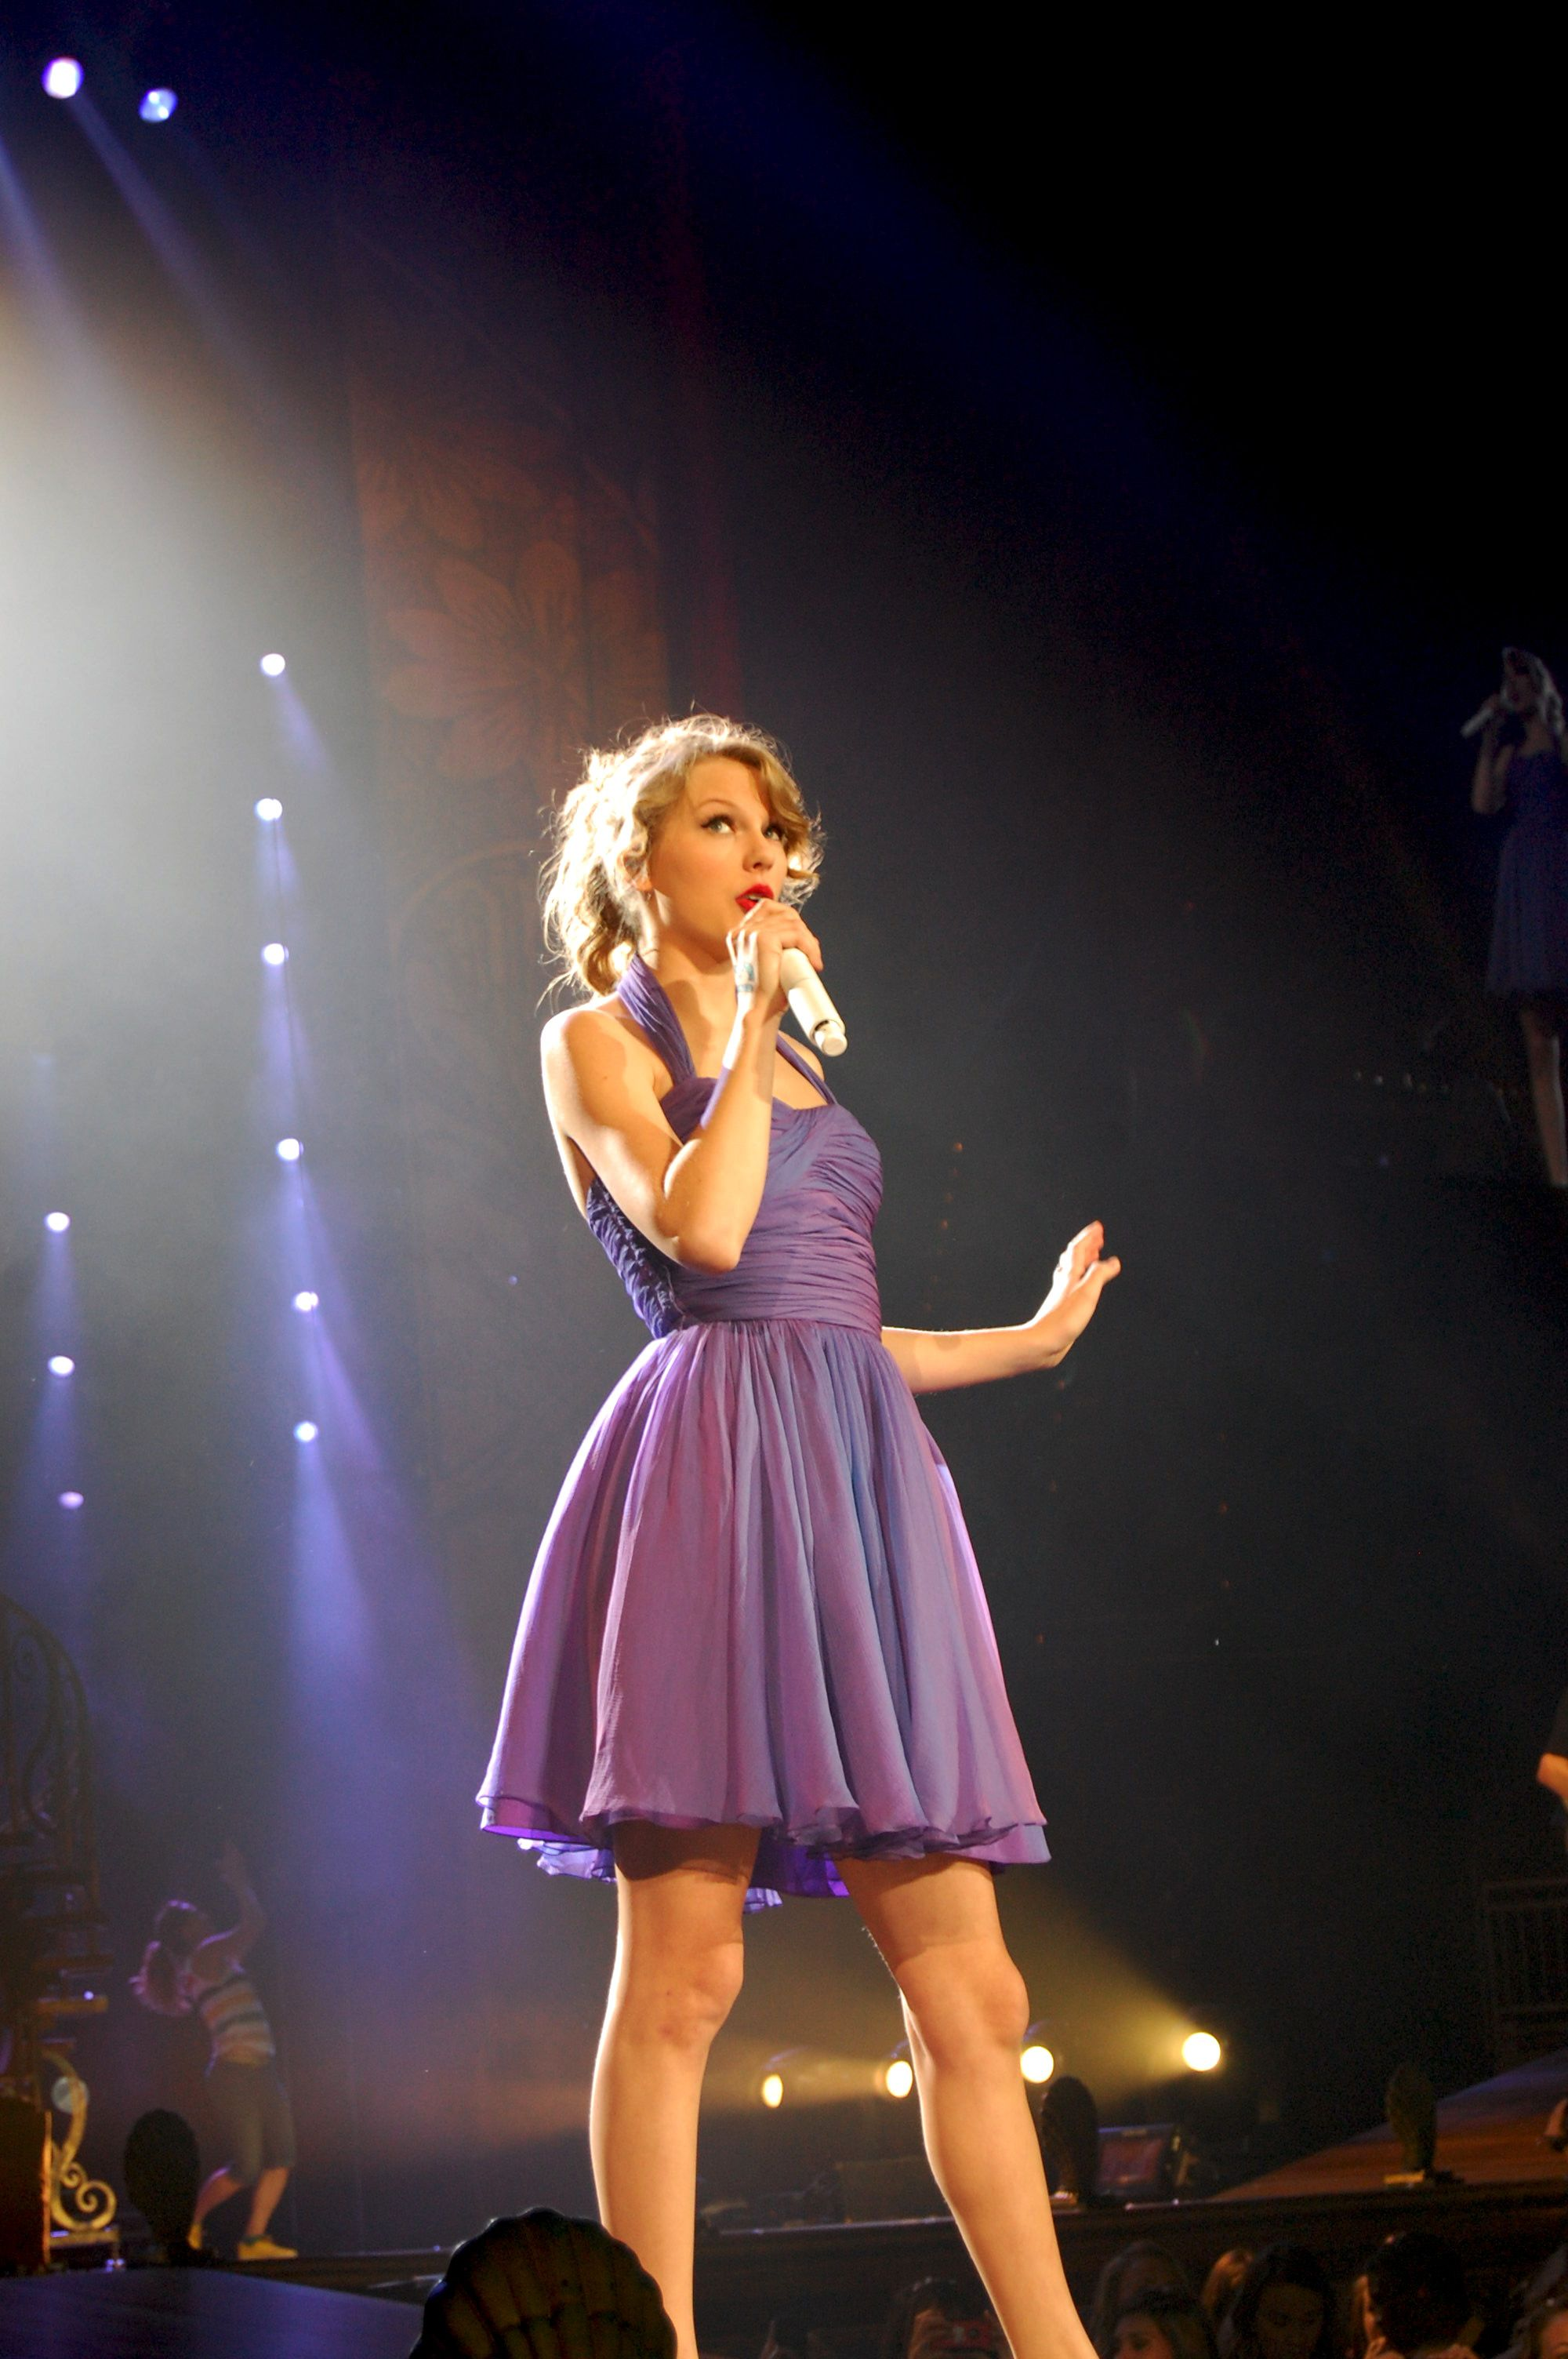 Taylor Swift Speak Now Tour 11/11/11 | my dream wardrobe ...